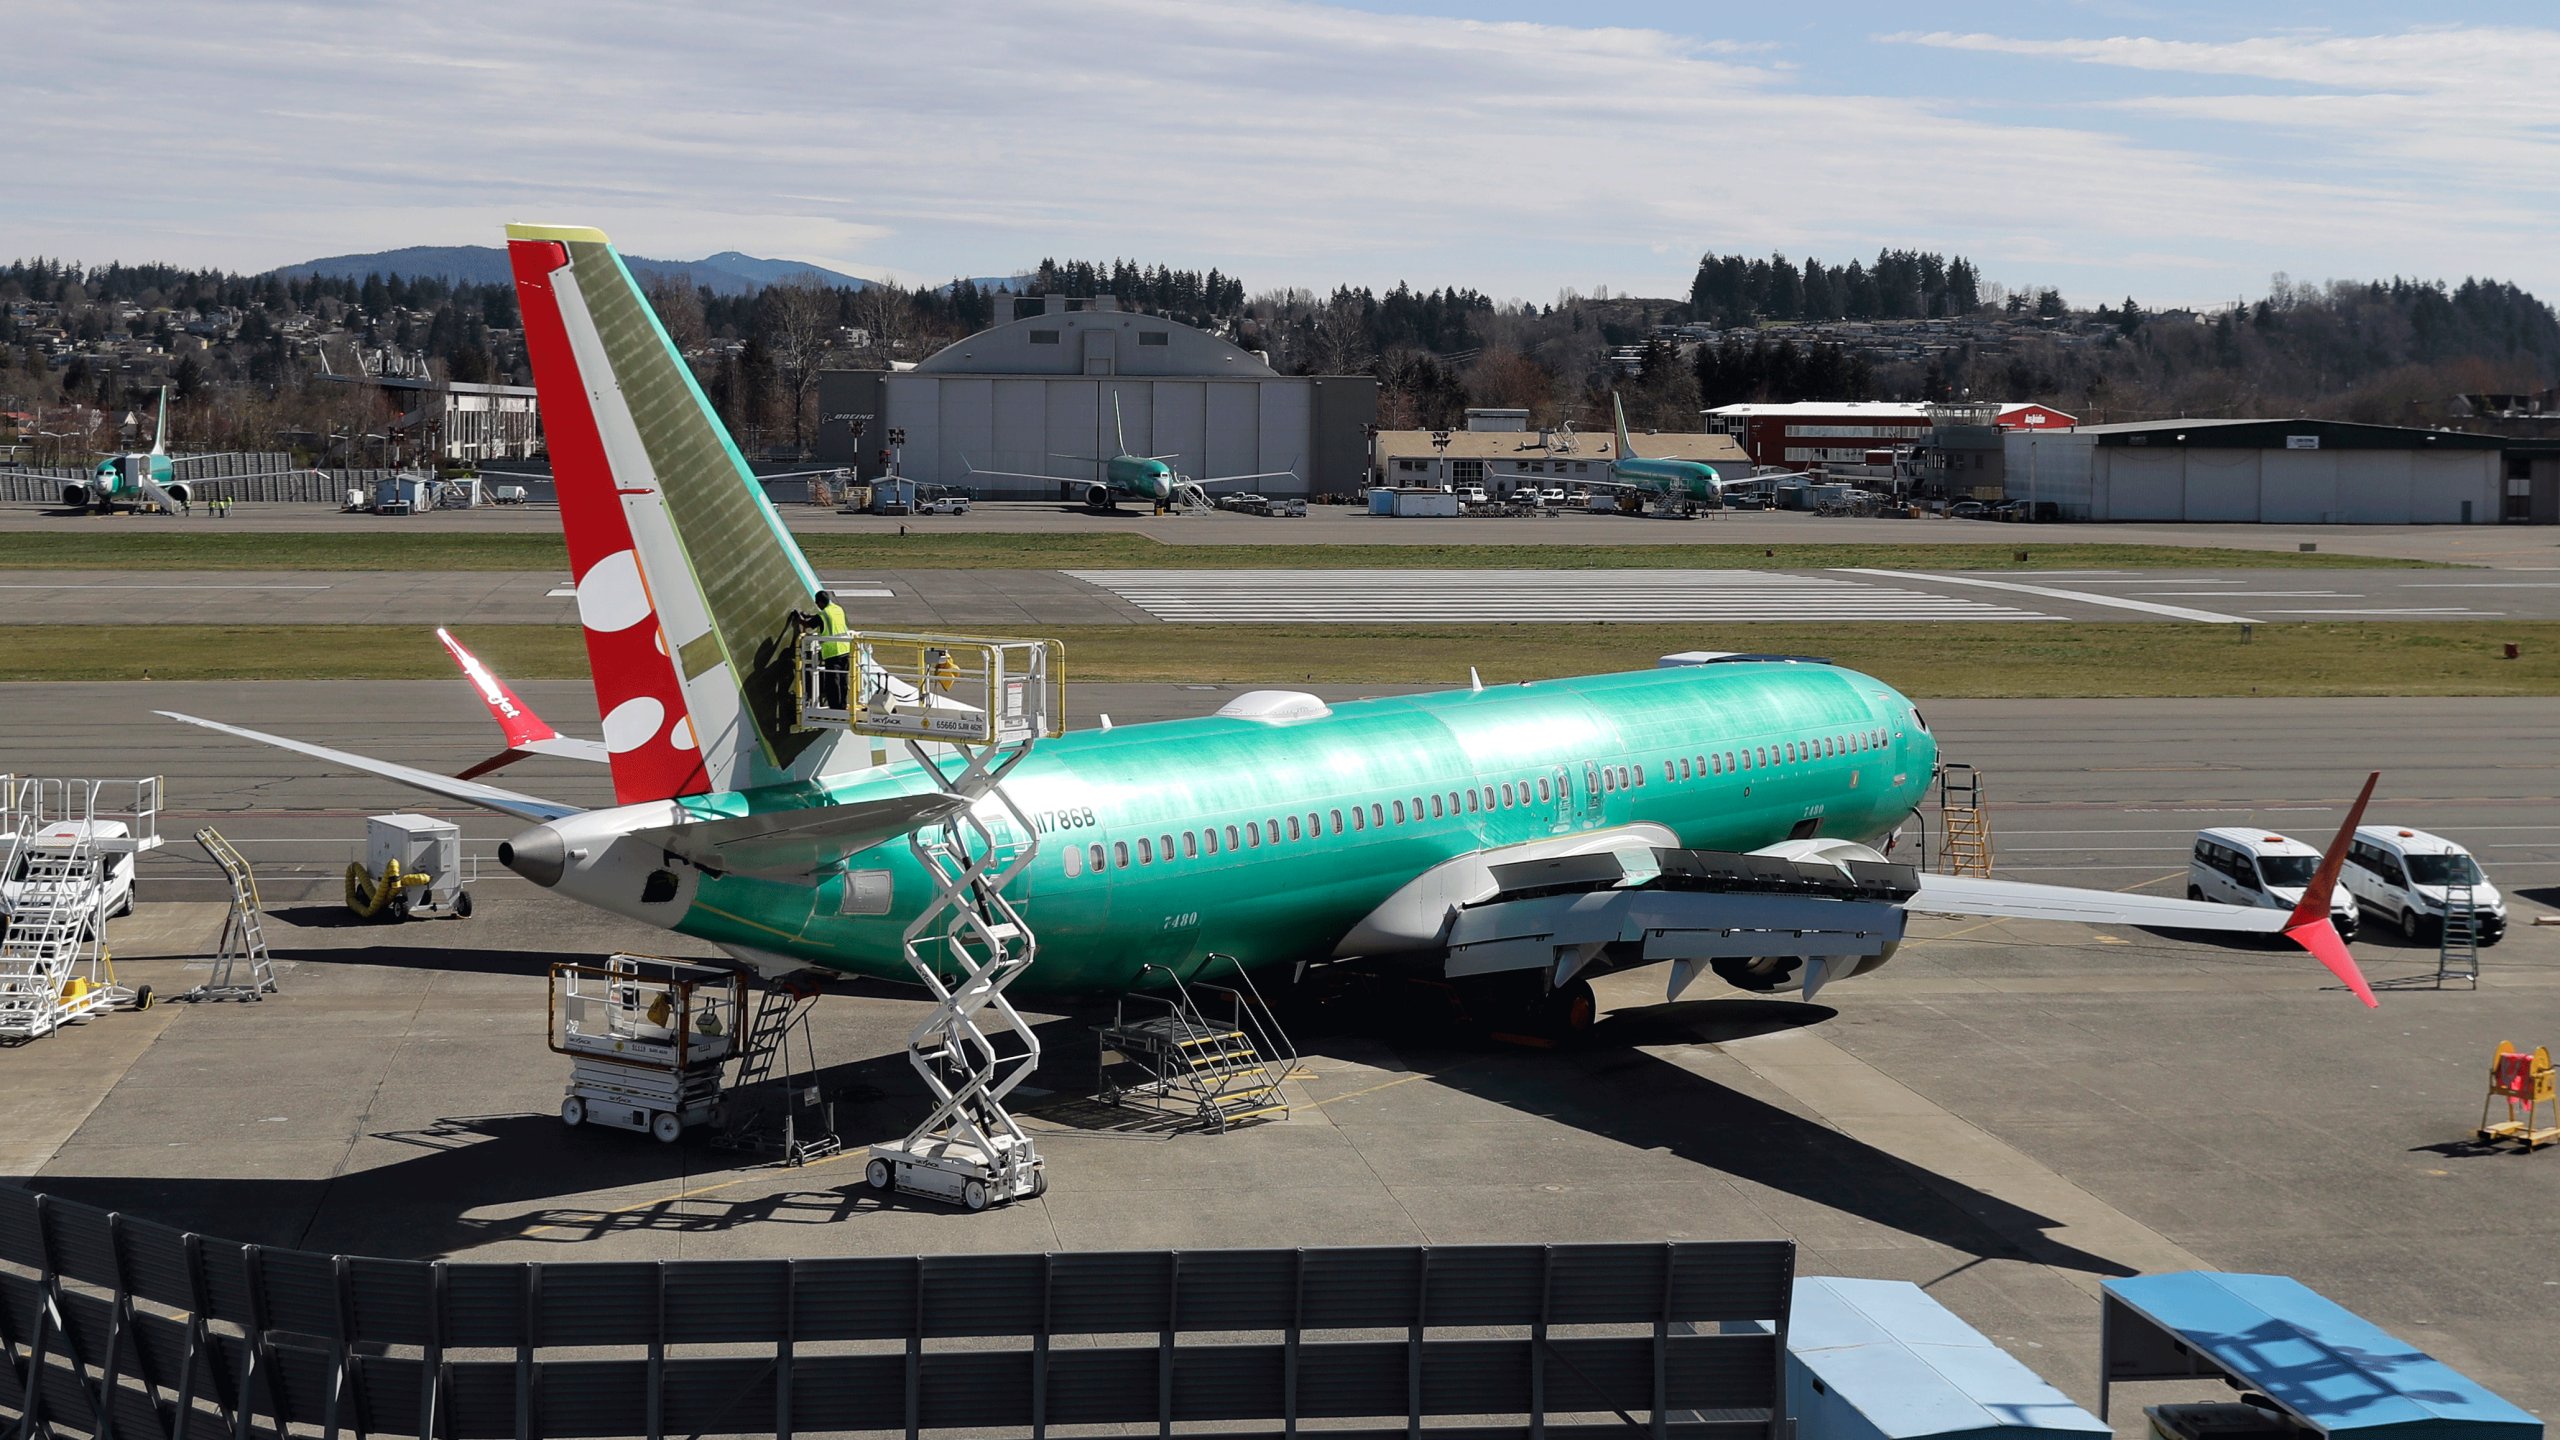 Boeing-737_1553544487617.png